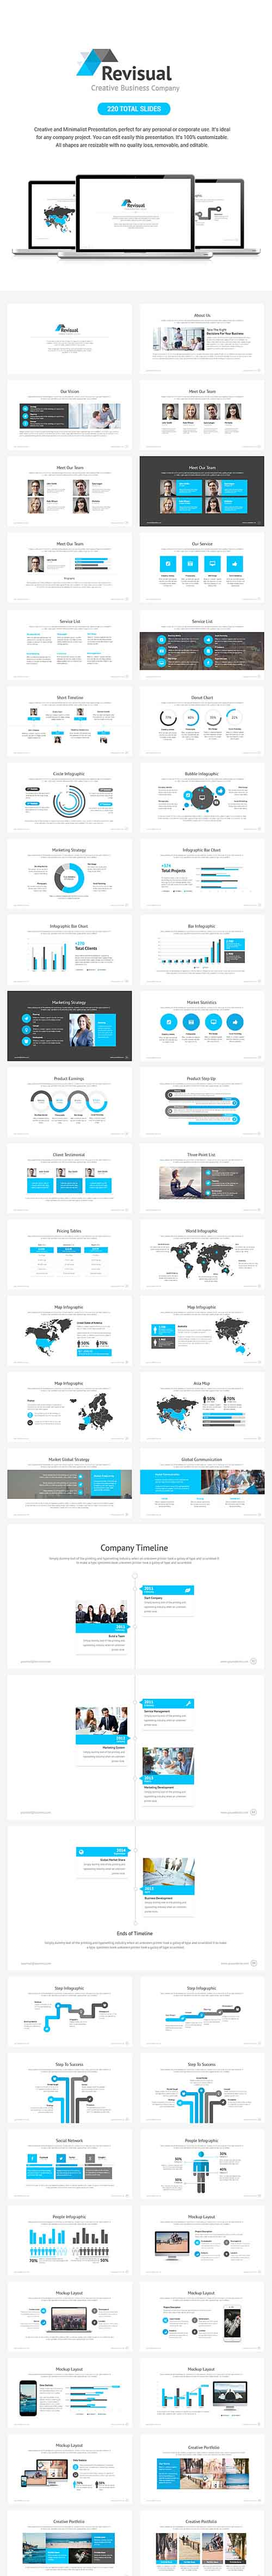 Revisual Powerpoint Template 9537682